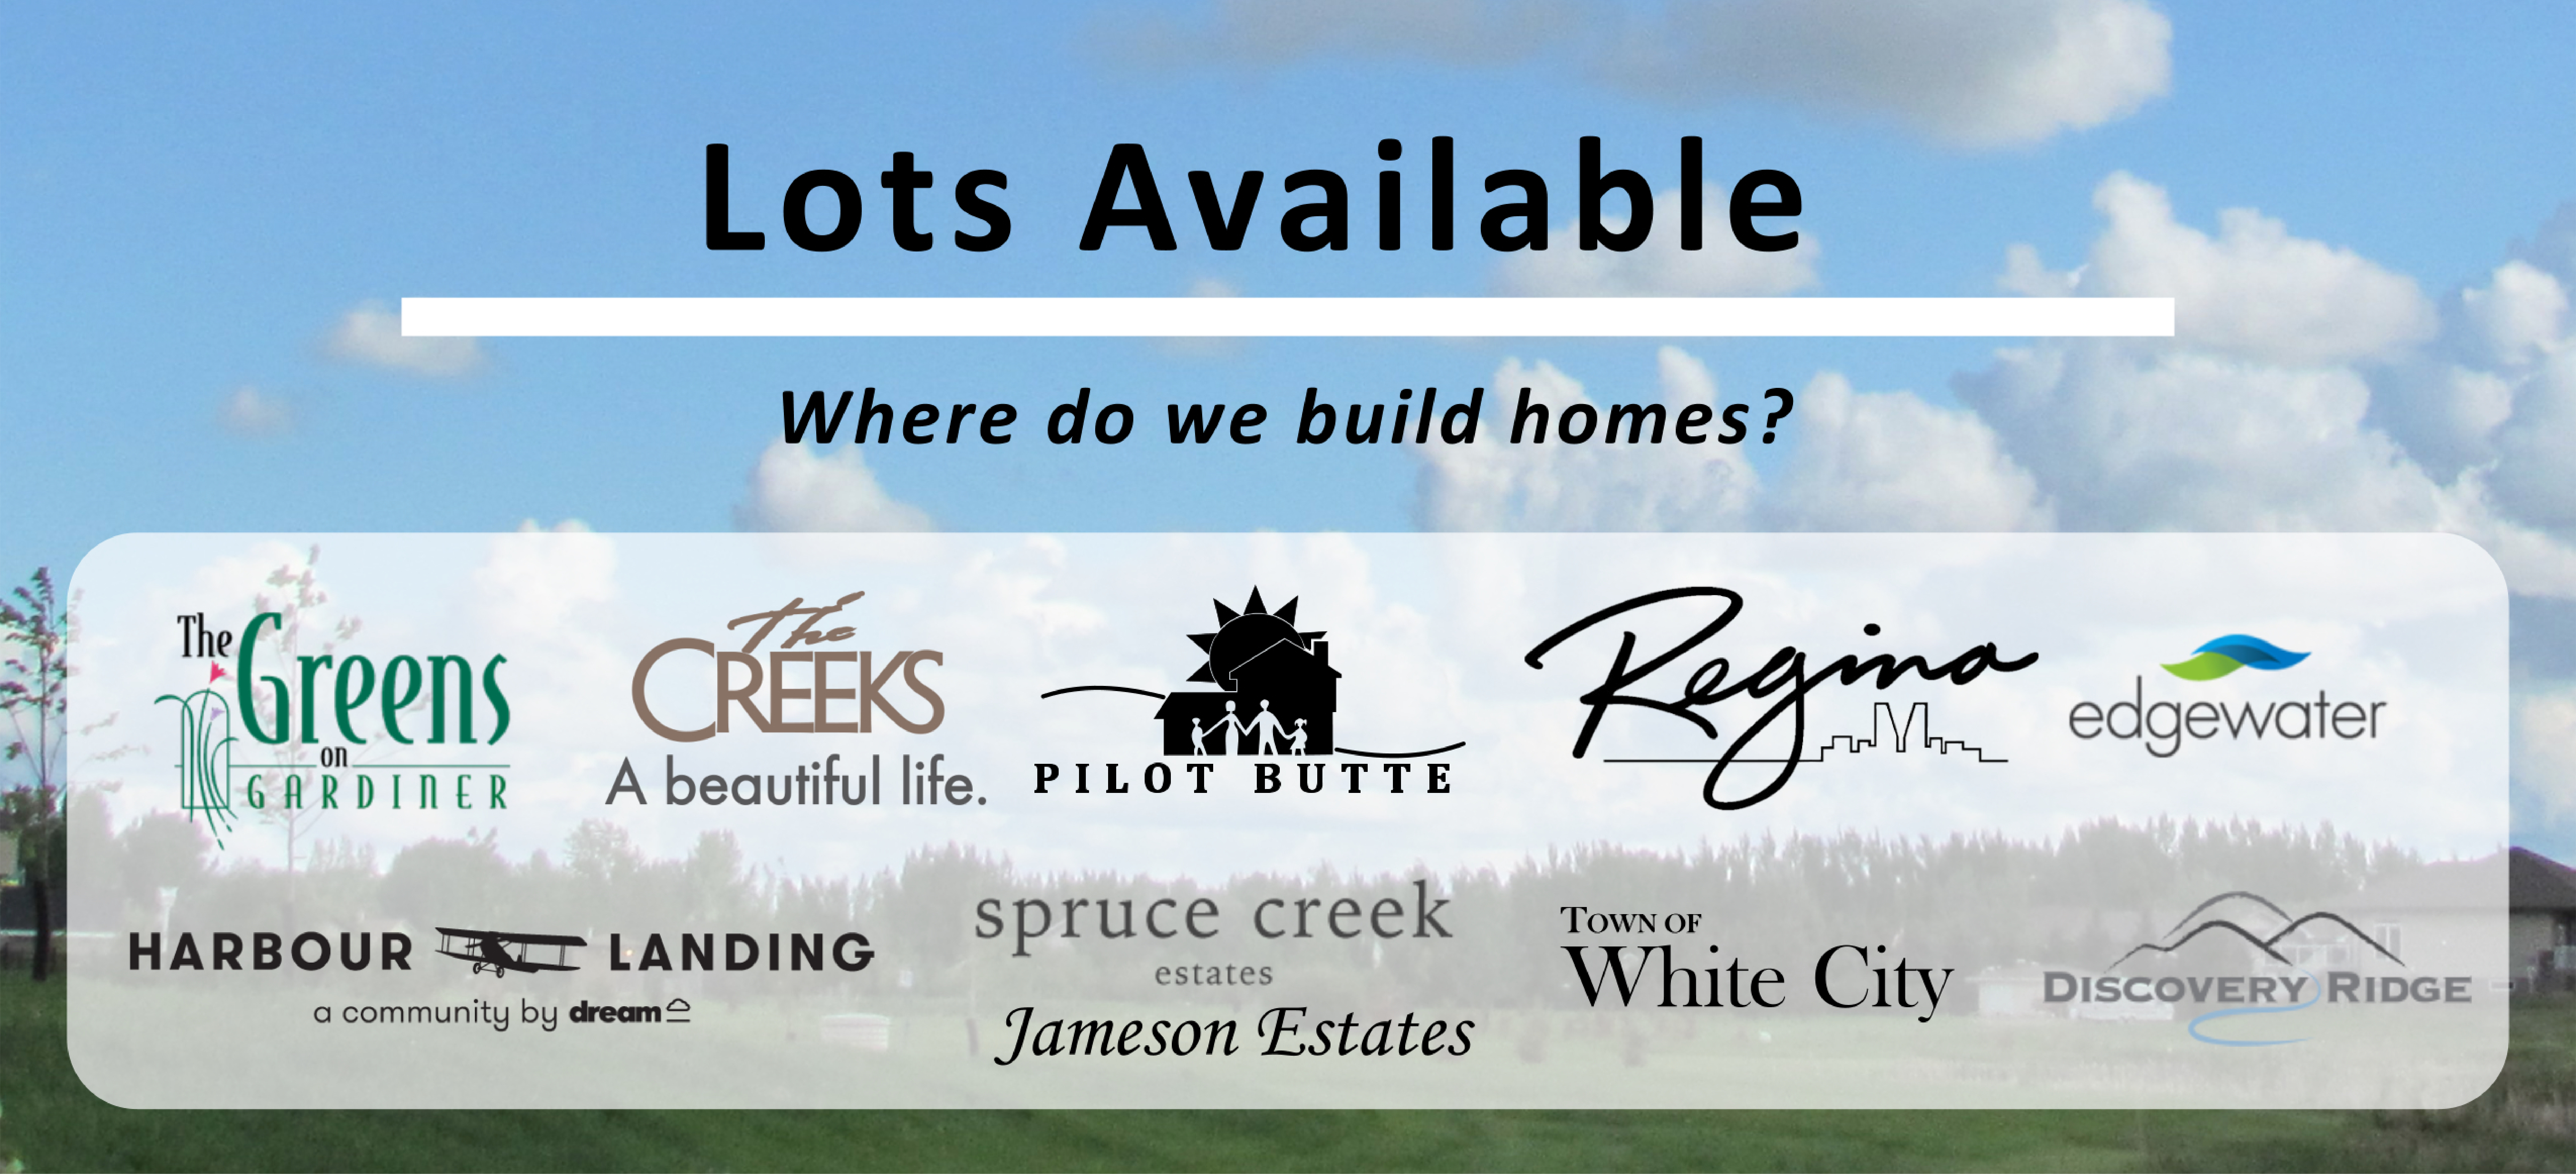 Emerald Park Homes - Lots Available